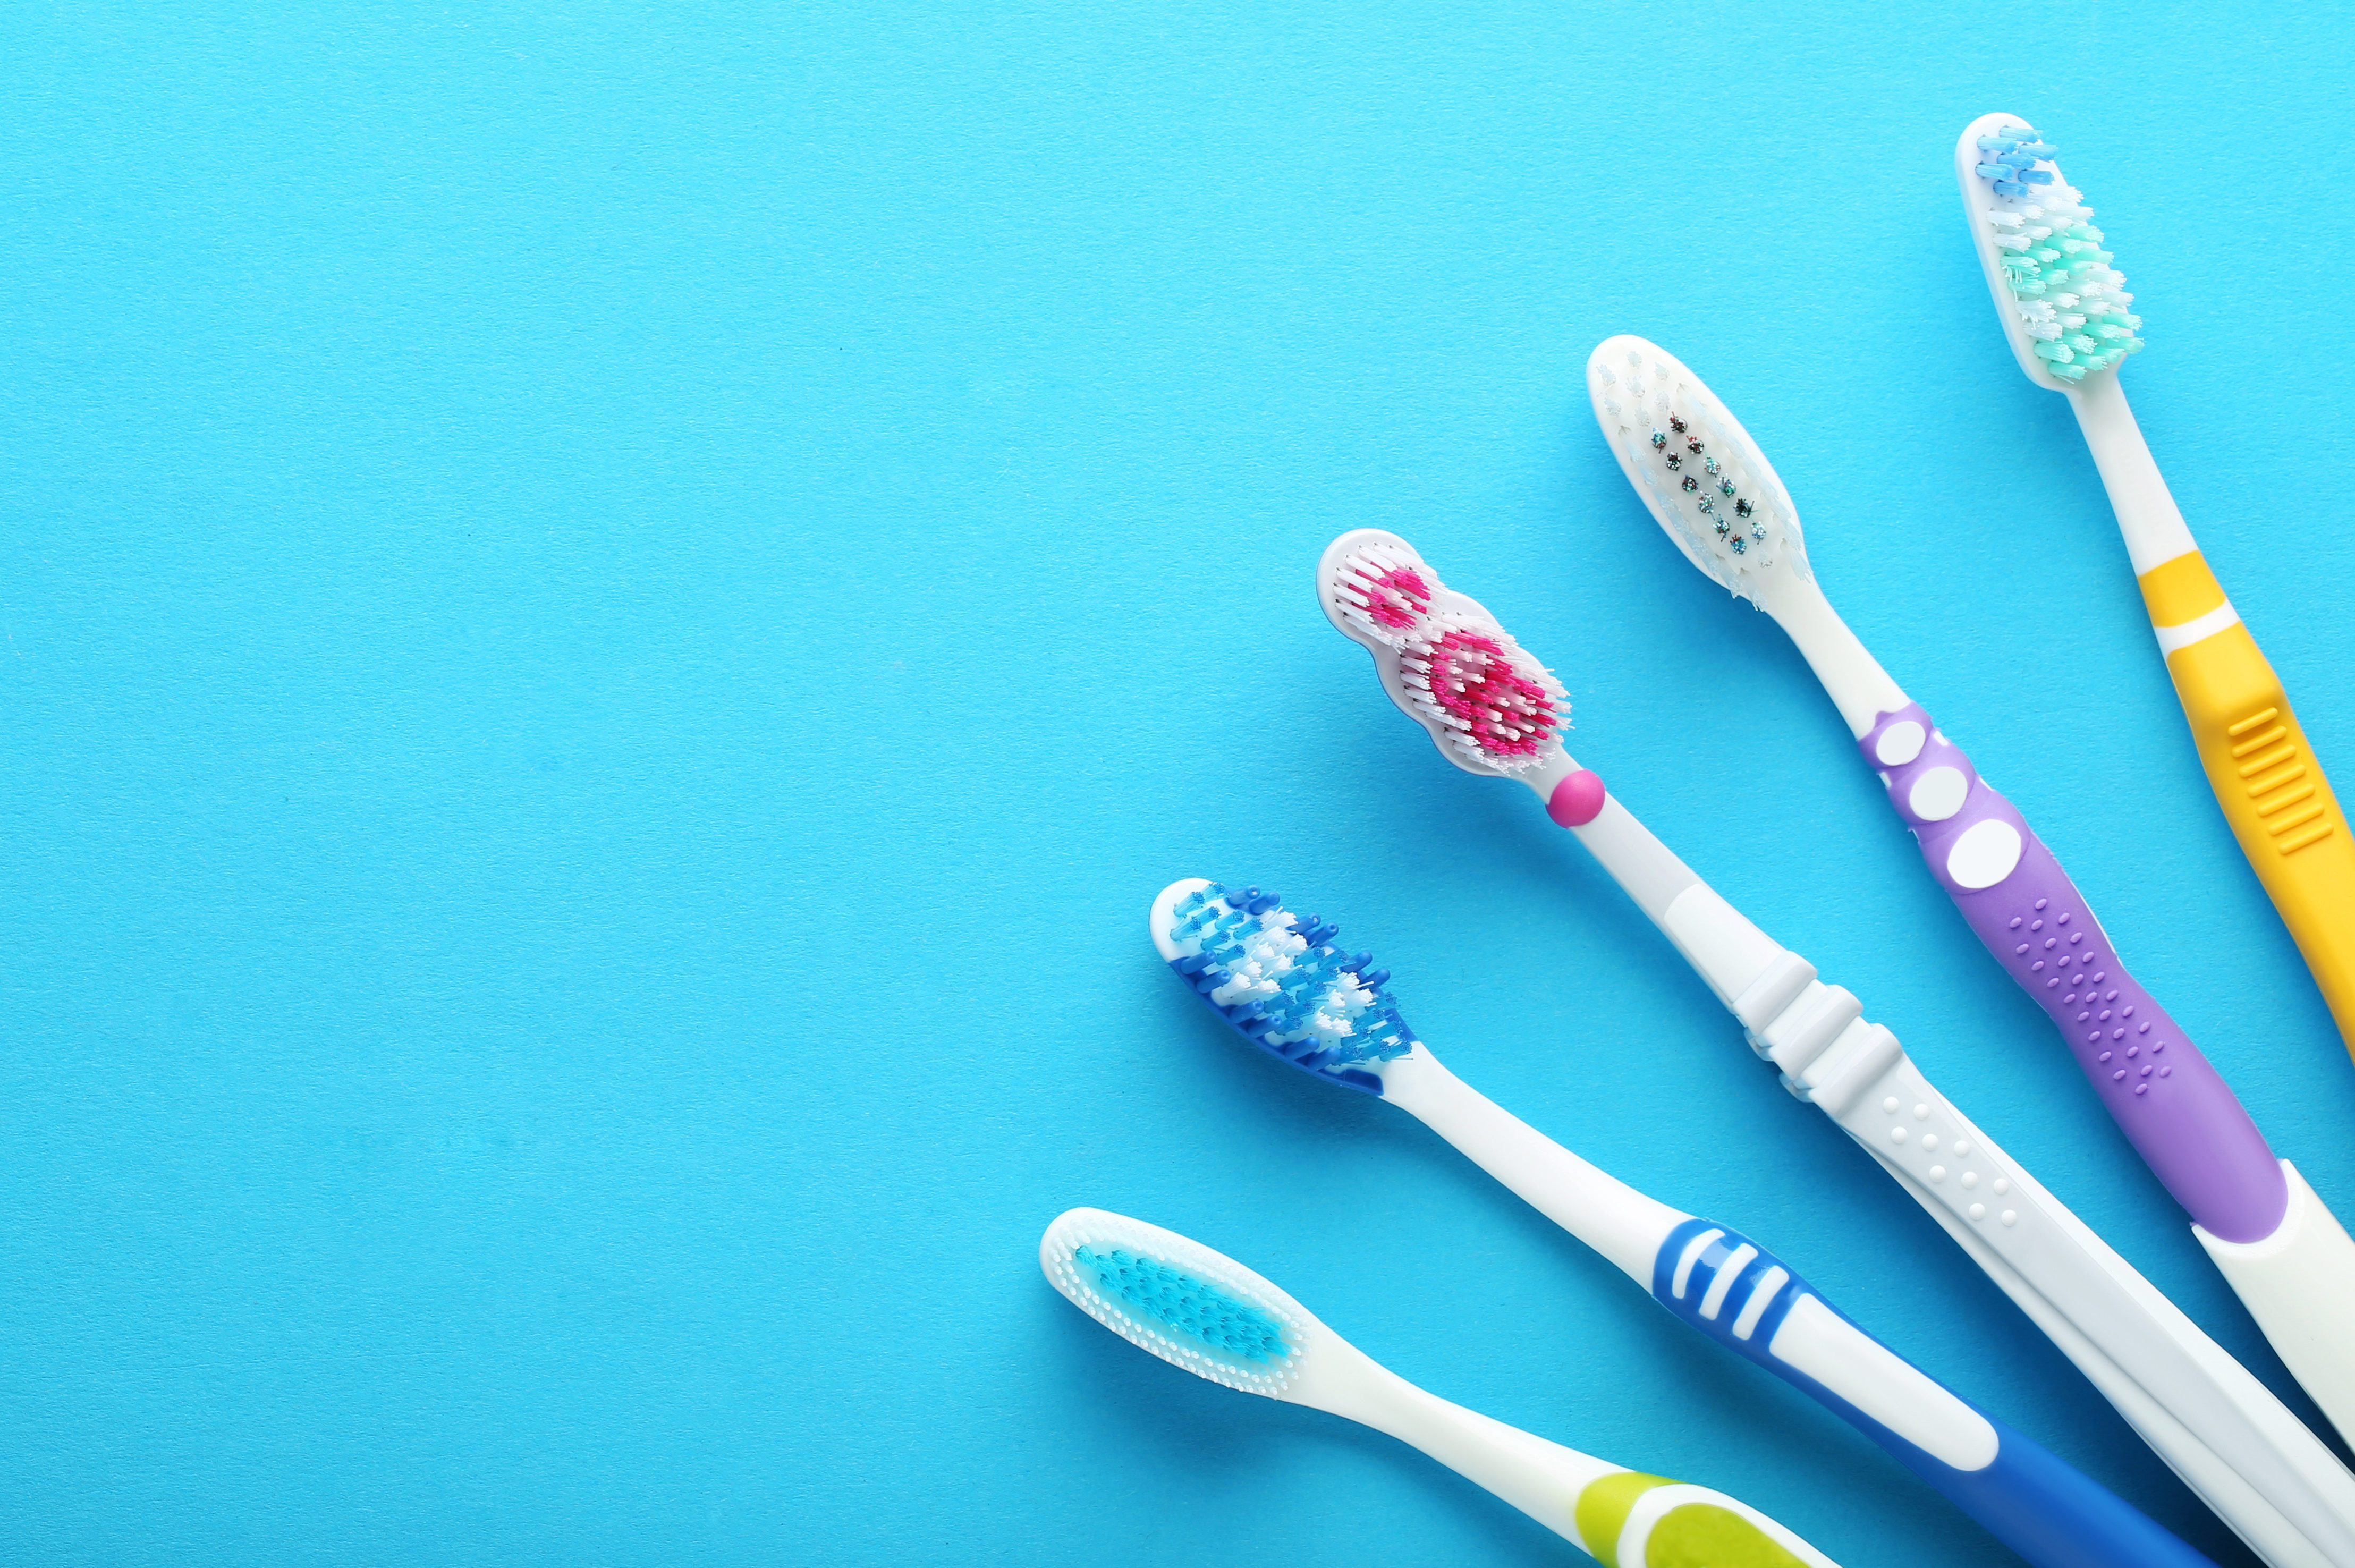 Toothbrushes on blue background